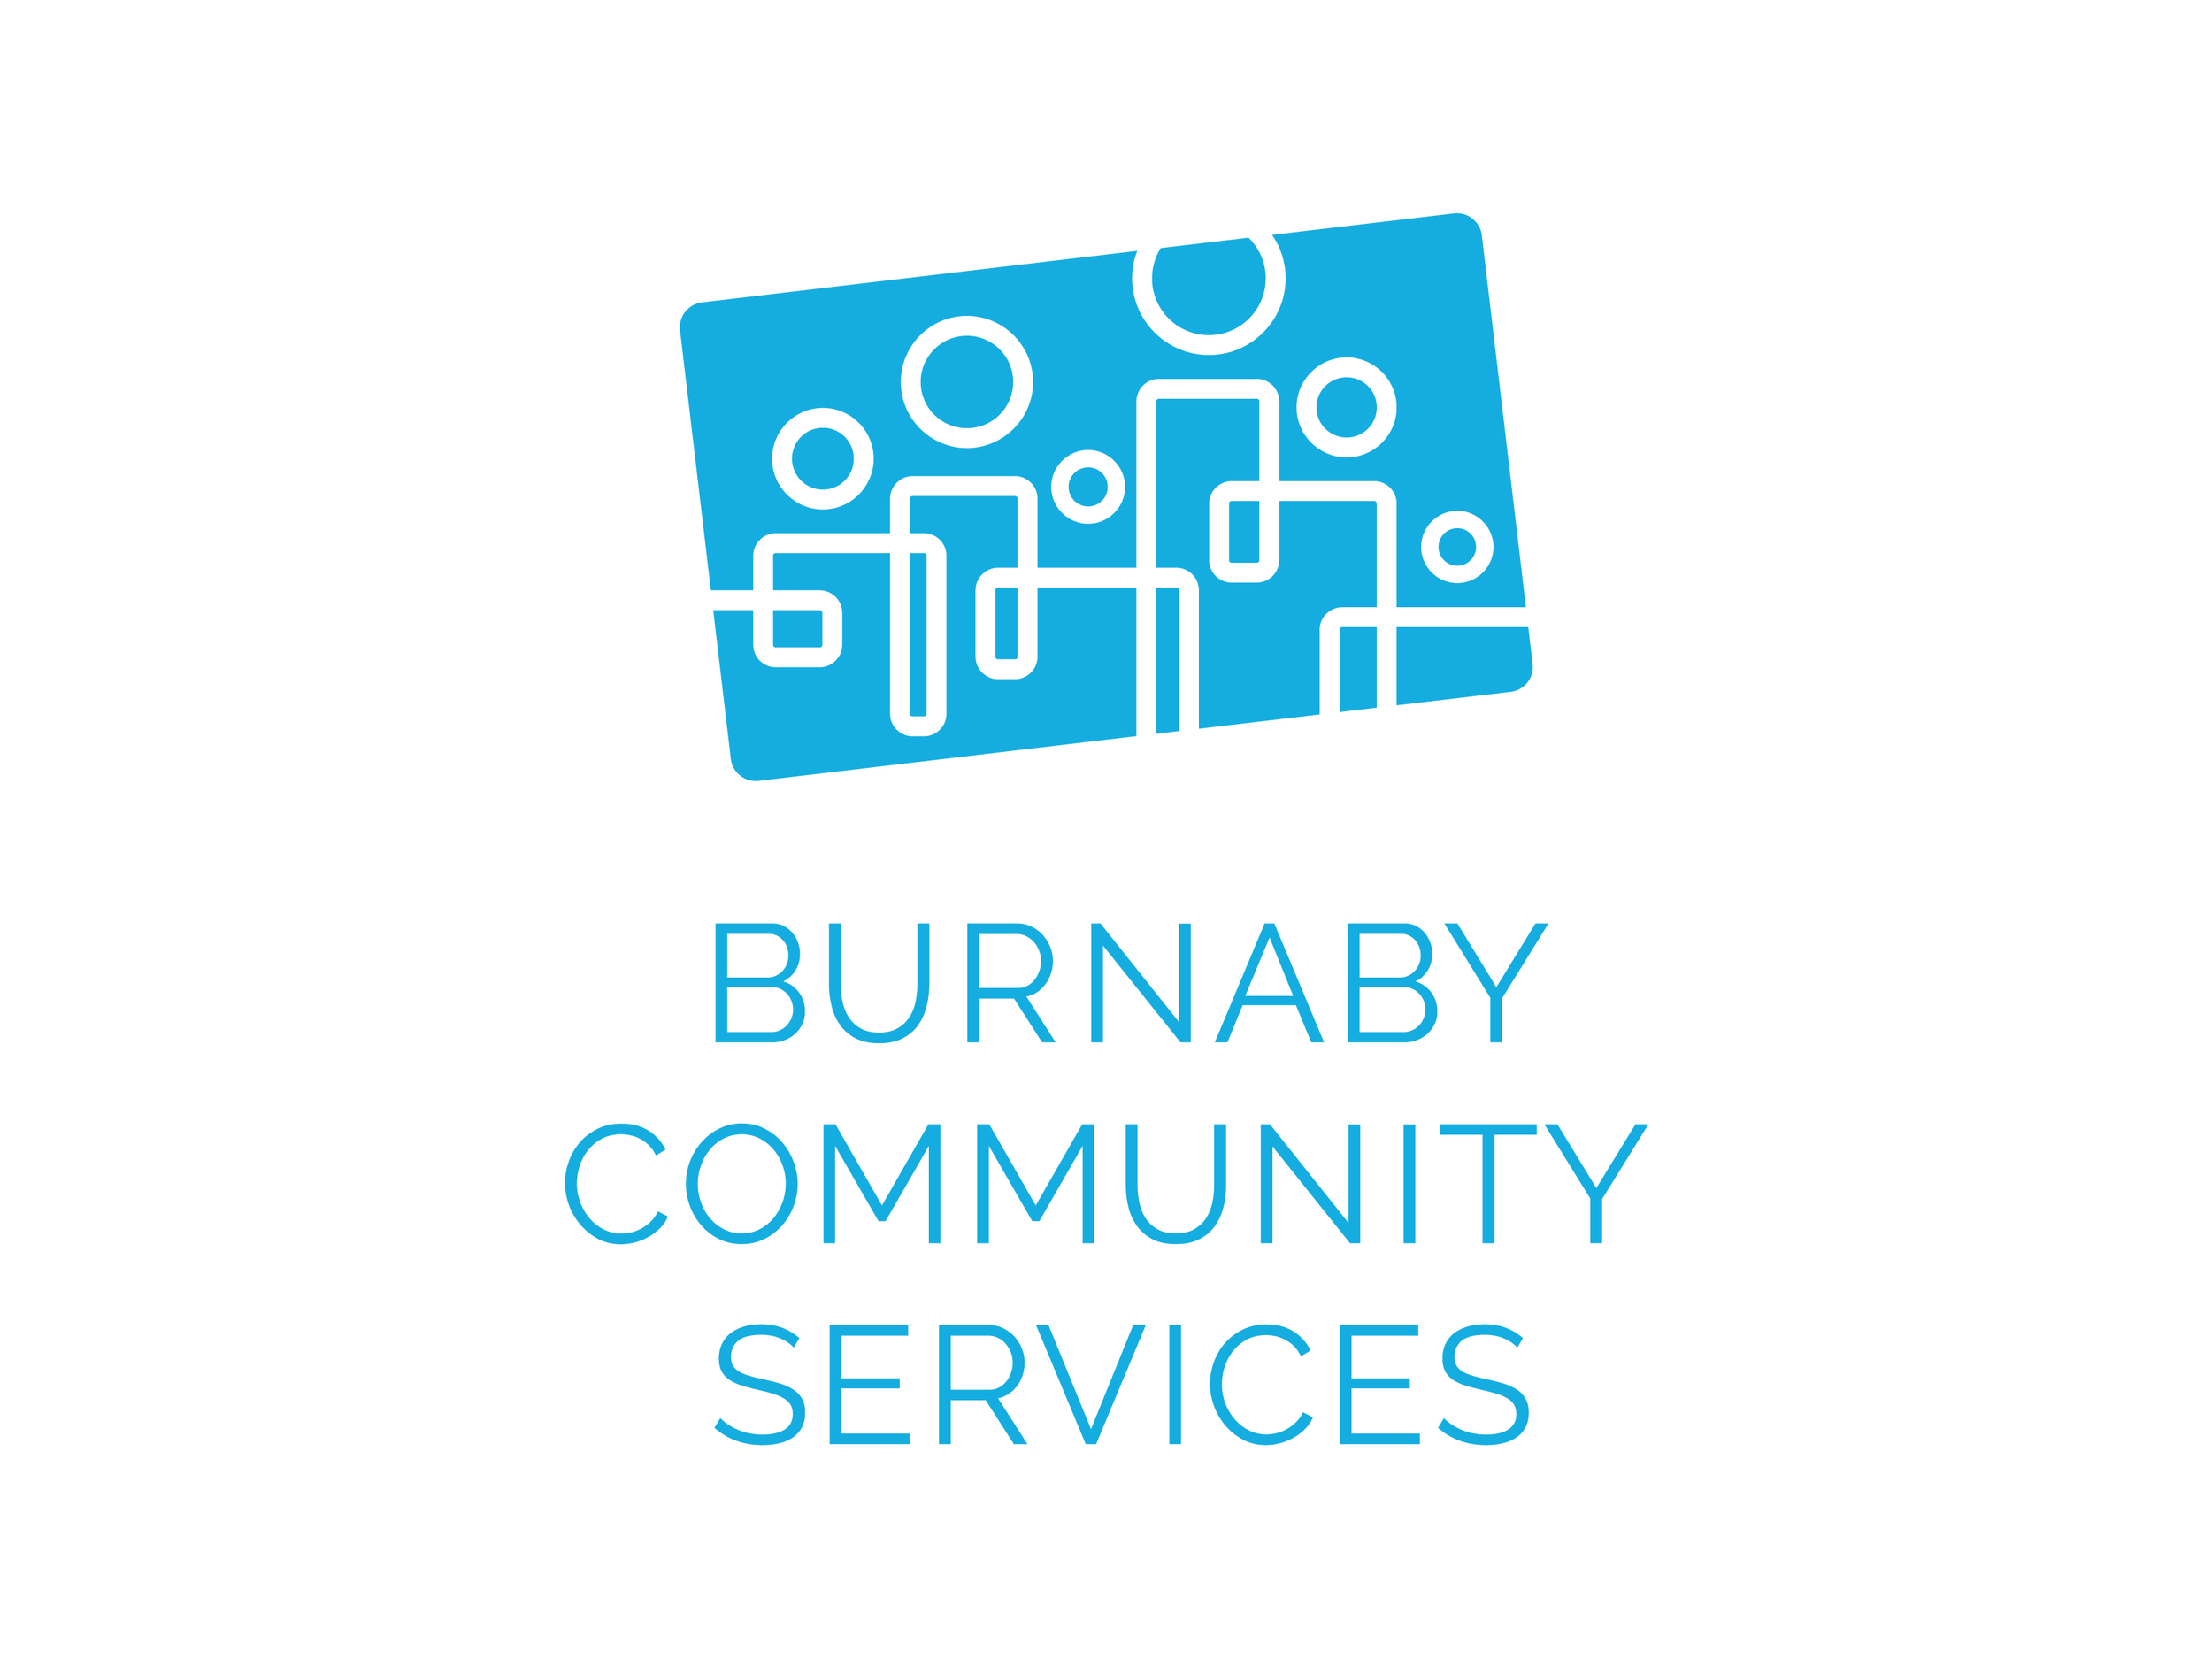 Volunteer in Burnaby - with Burnaby Community Services